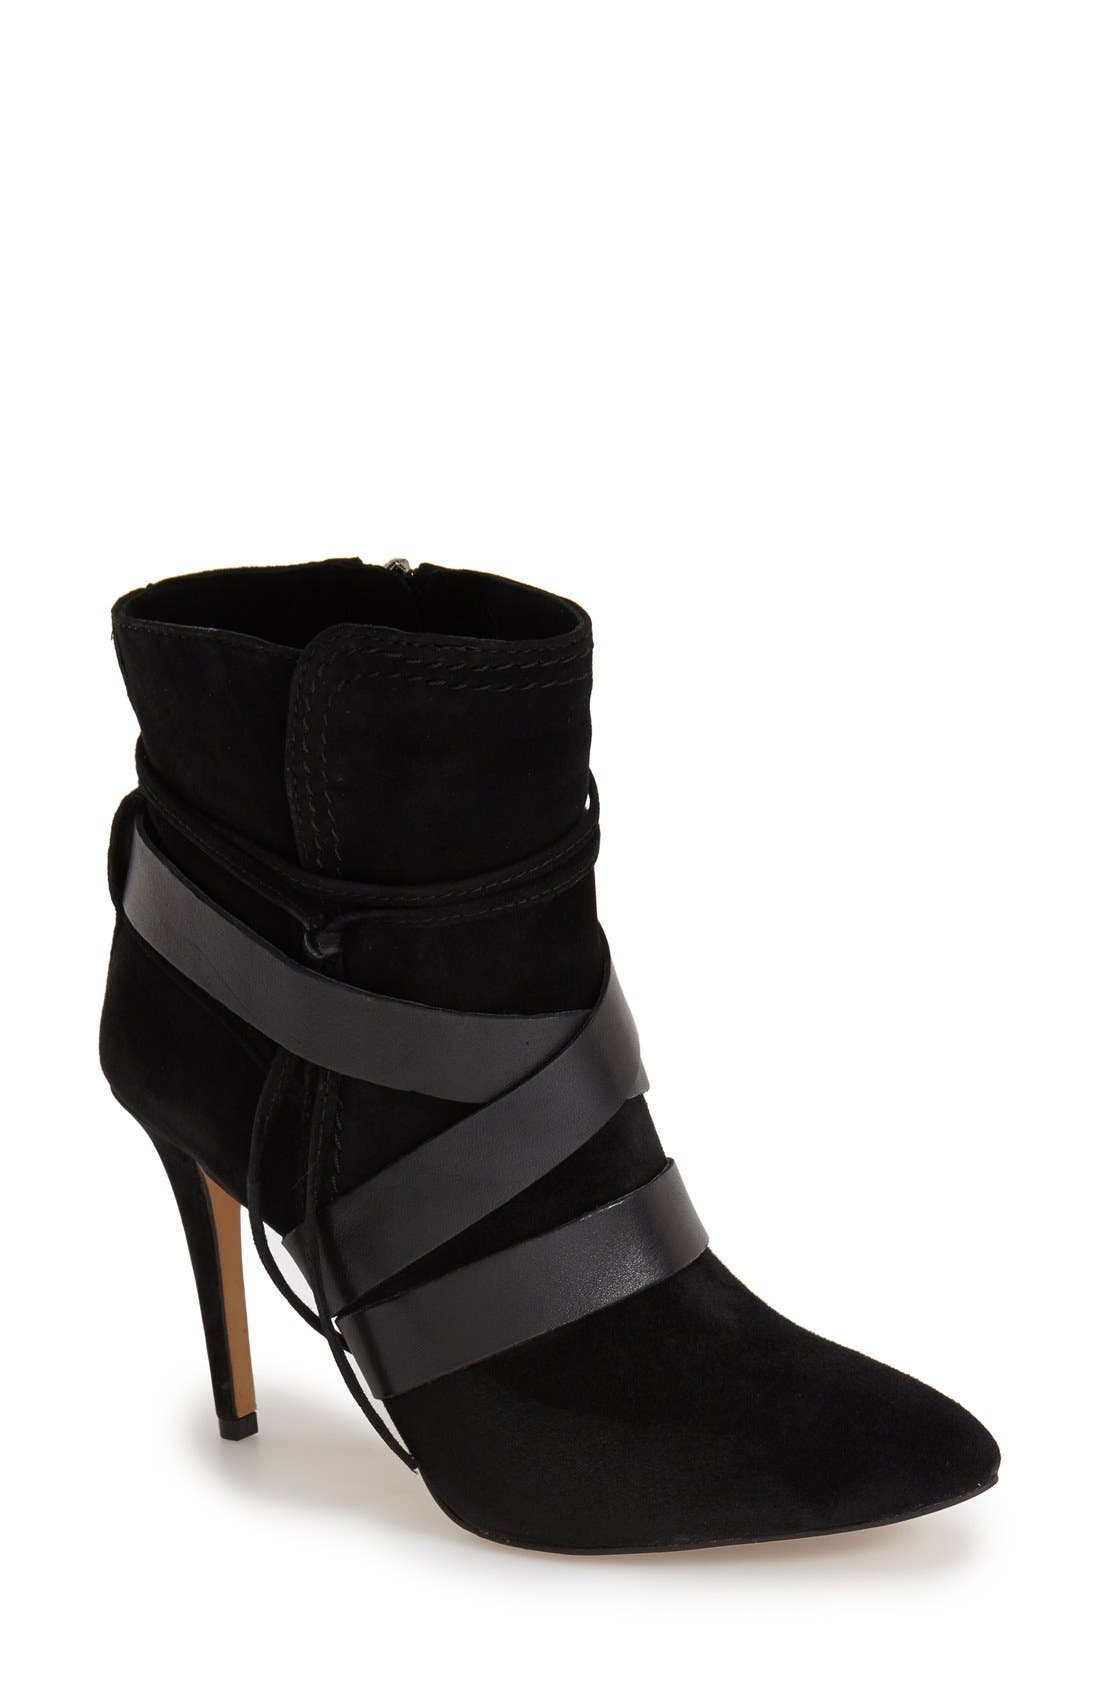 Main Image - Vince Camuto 'Solter' Pointy Toe Bootie (Women)